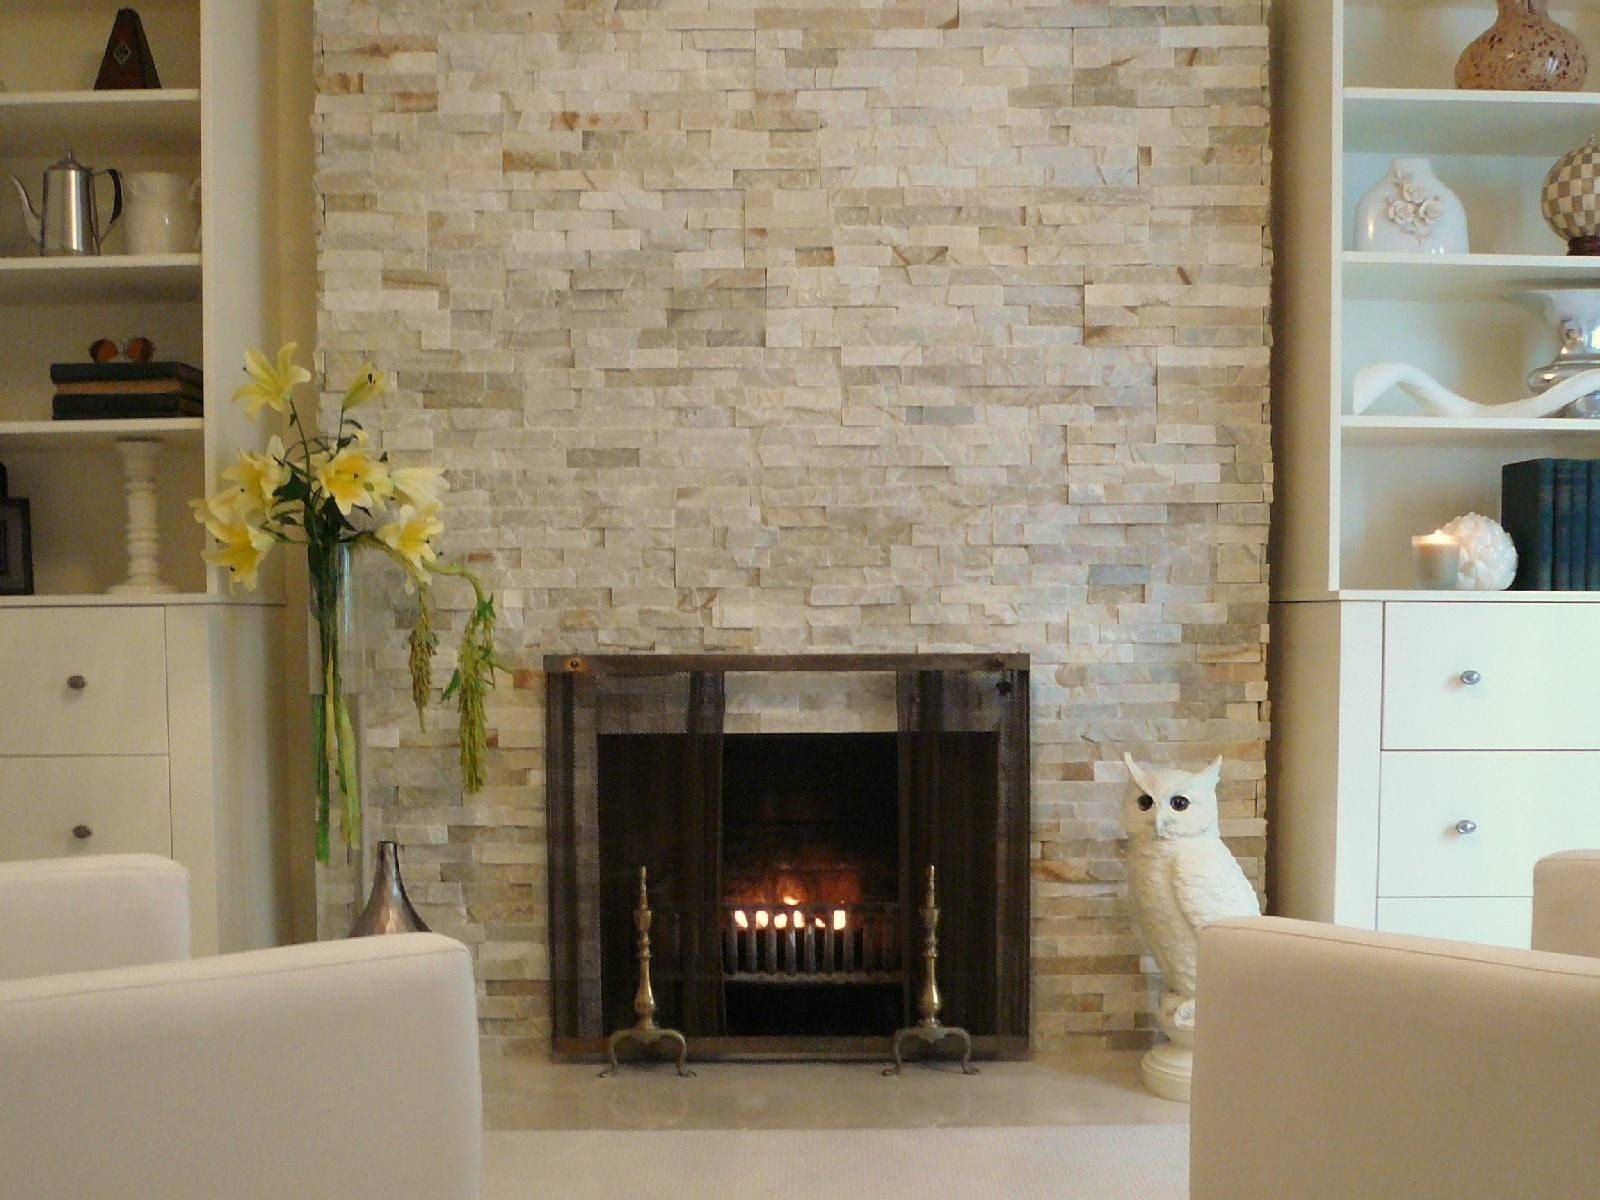 Stone fireplace surround fireplace surround ideas Fireplace surround ideas